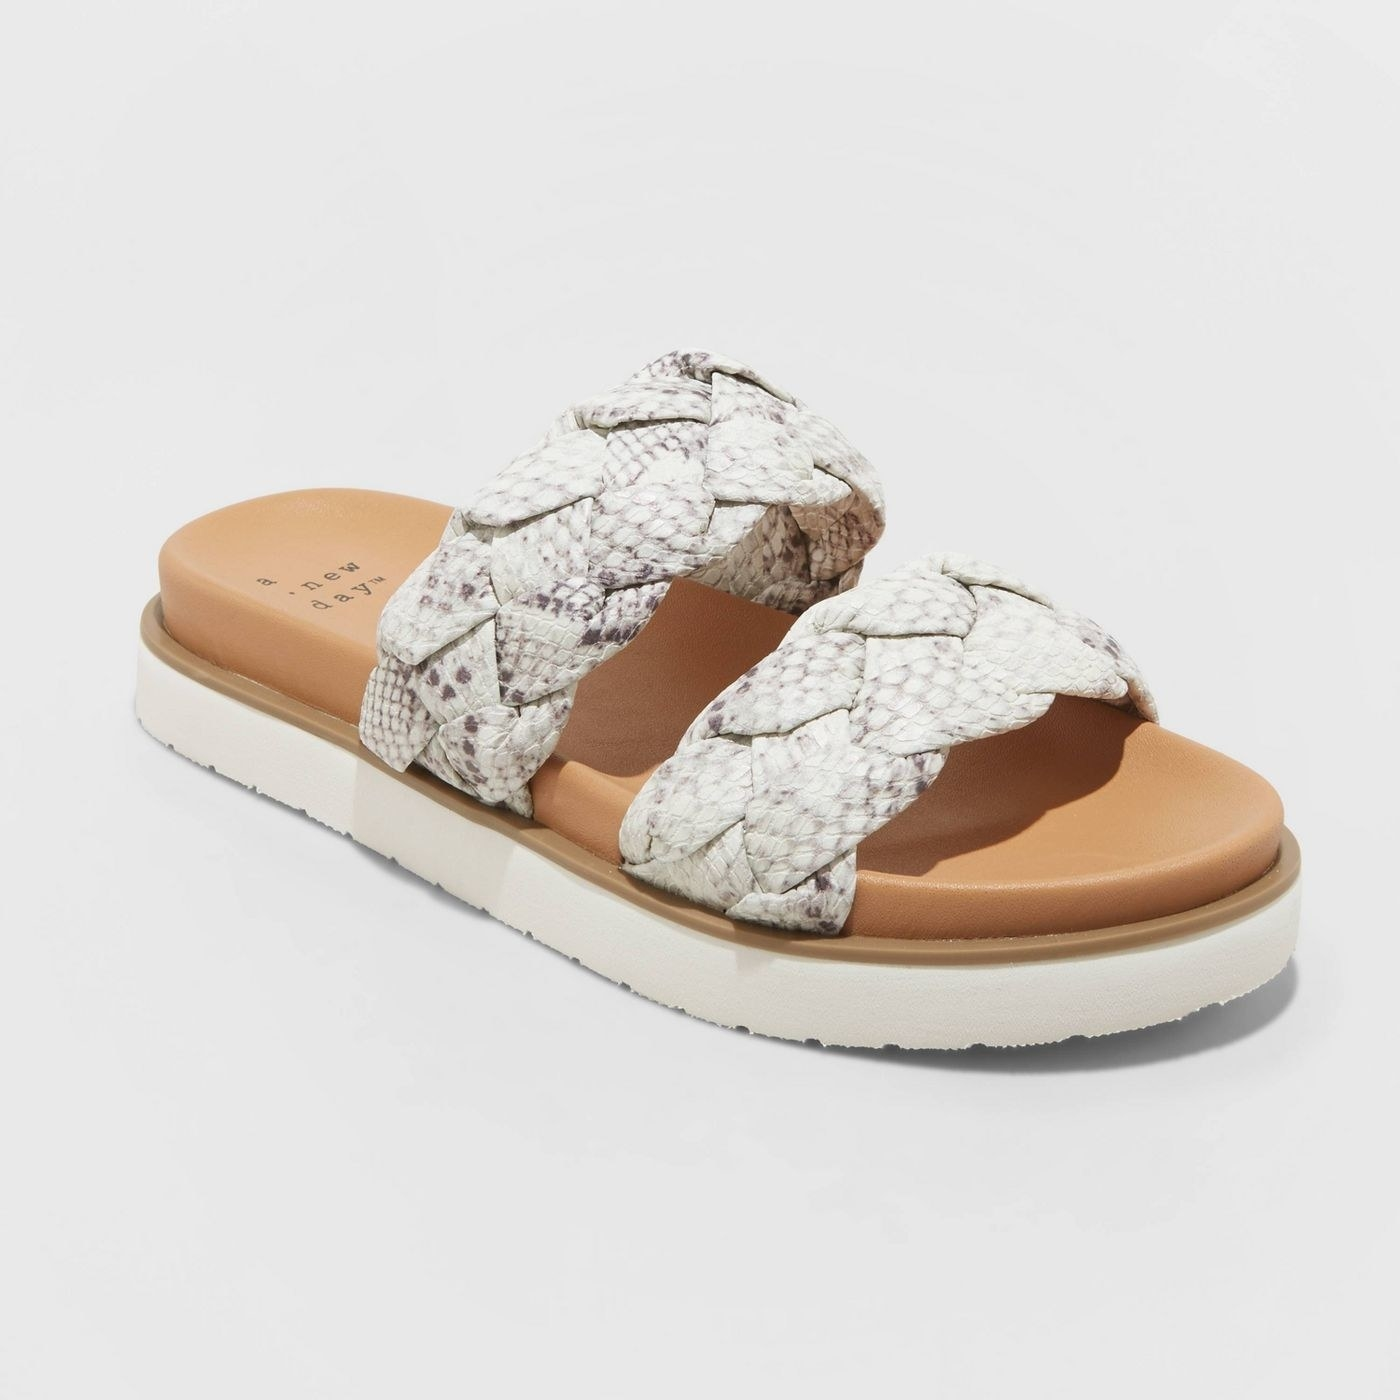 white and tan slip-on sandals with two braided straps